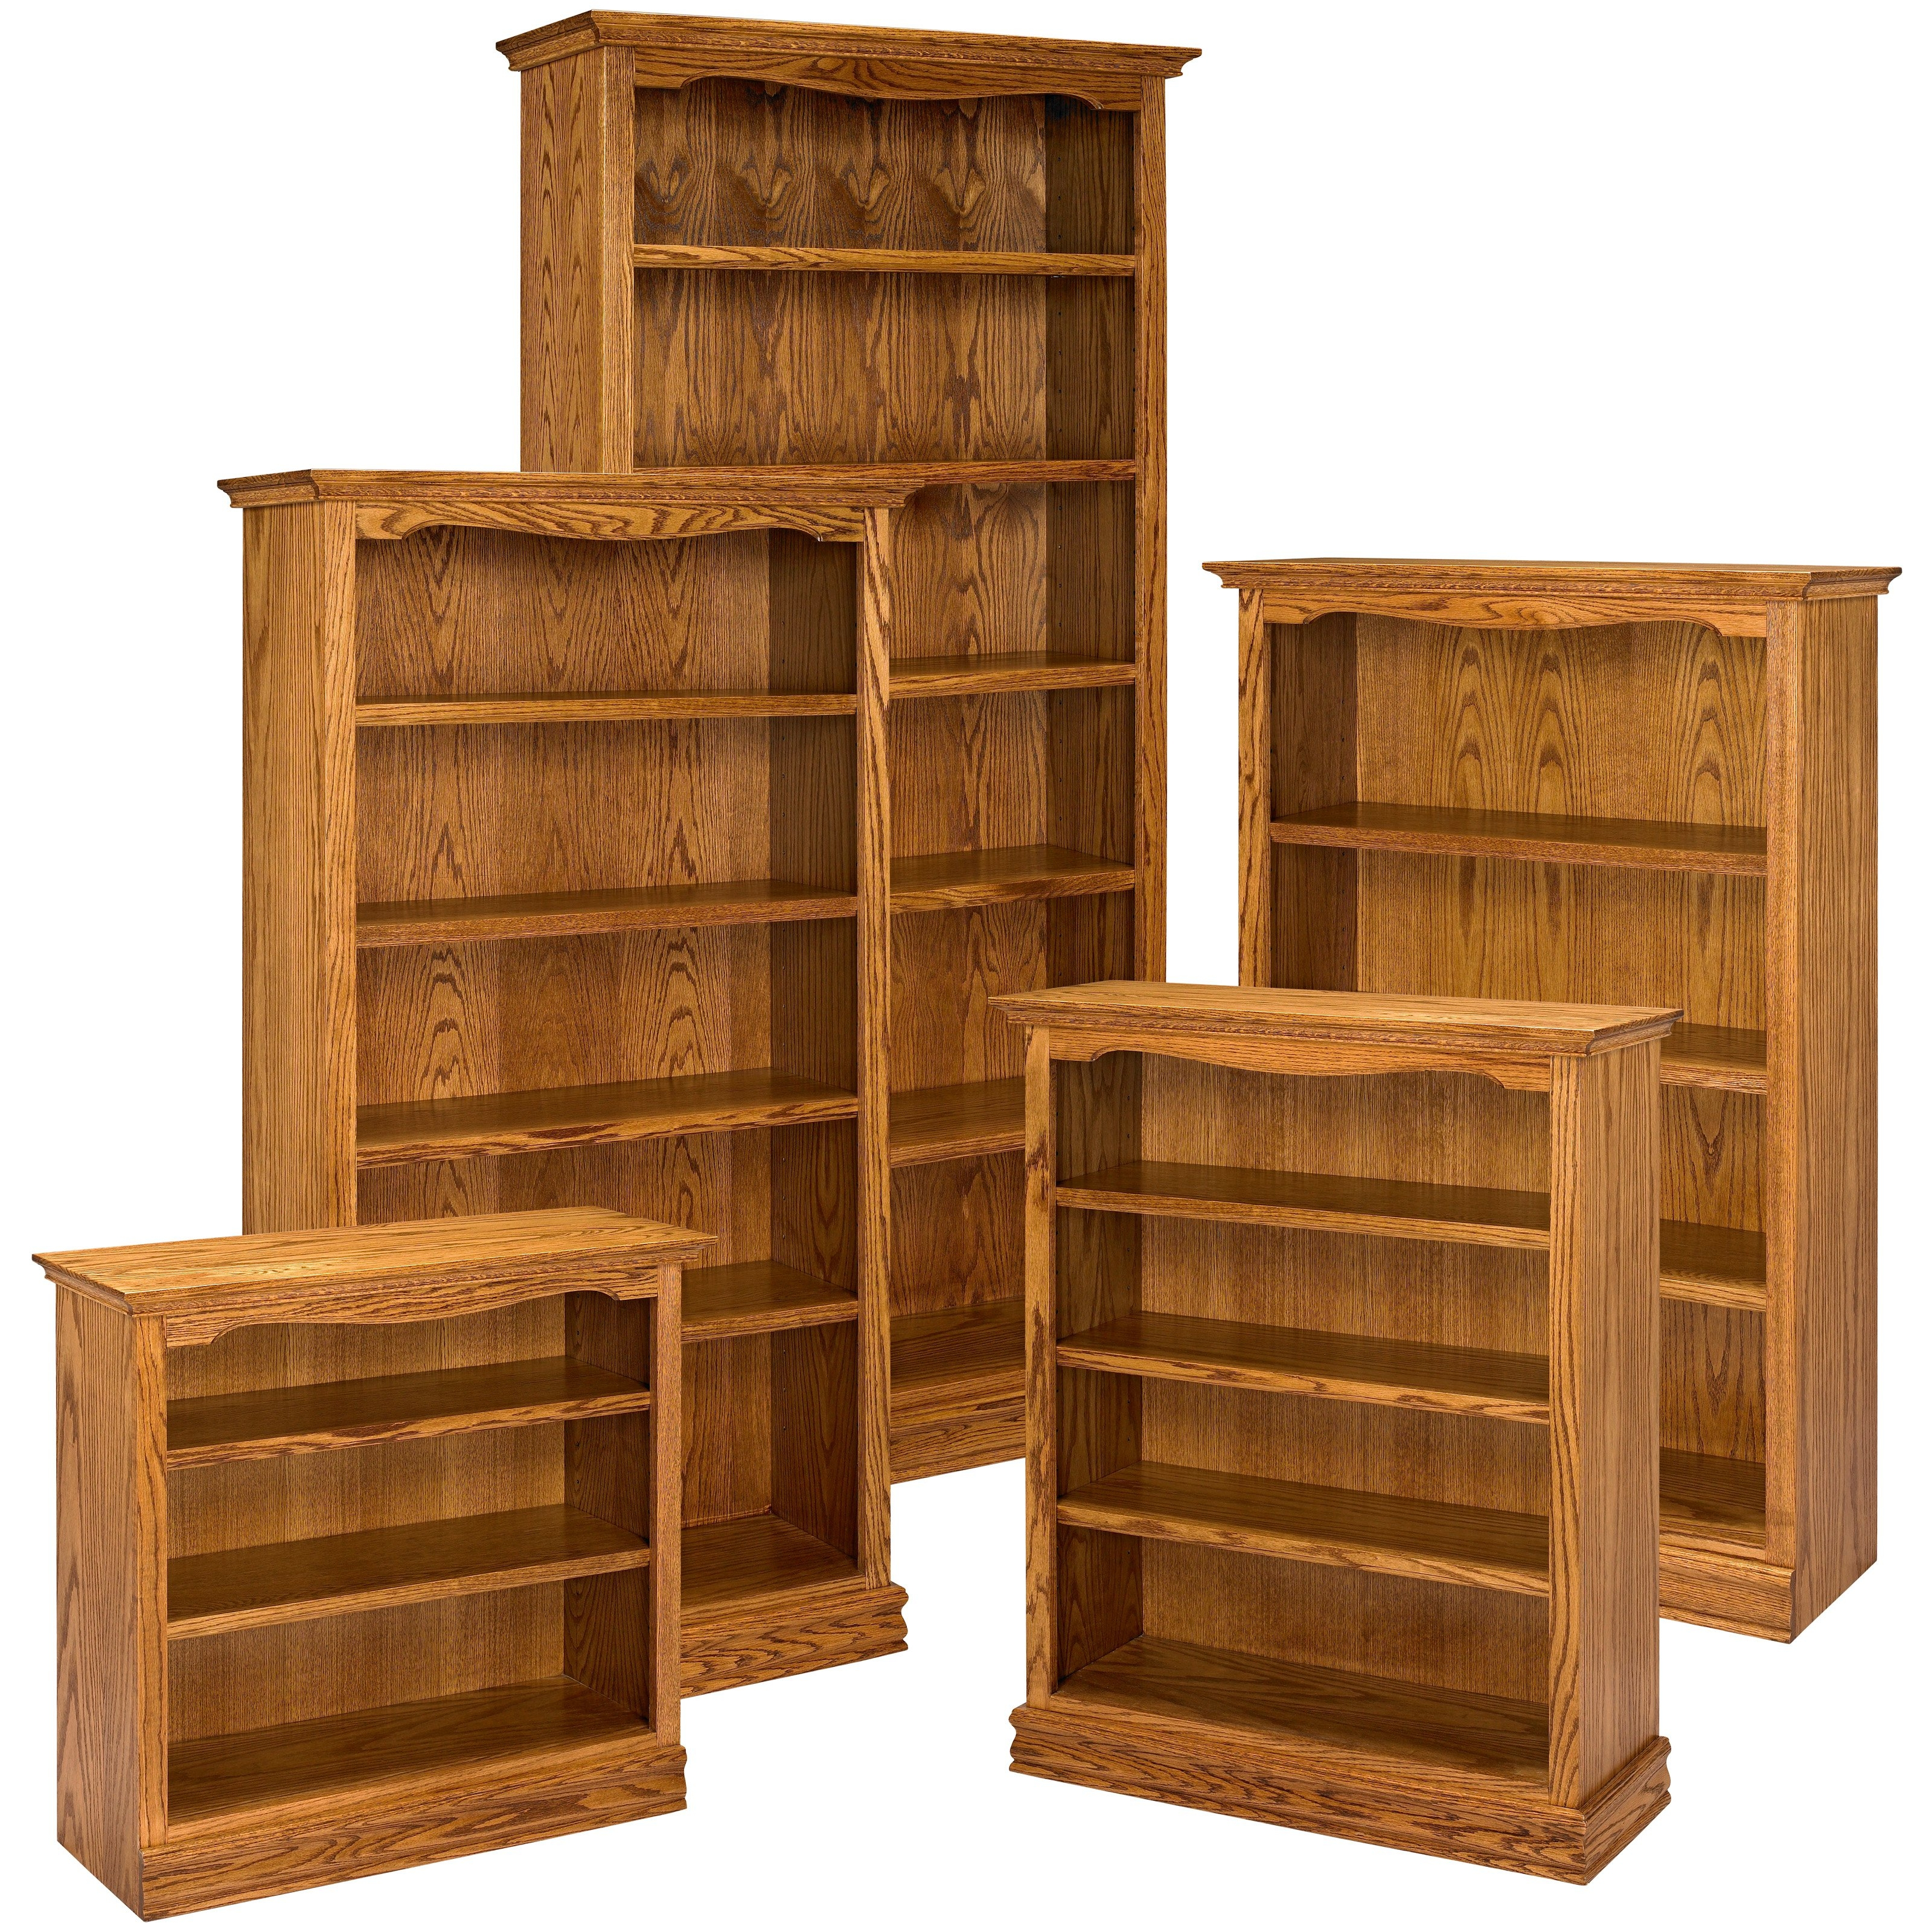 A E Solid Oak Americana Wood Bookcase Bookcases At Hayneedle With Oak Bookcases (View 10 of 15)